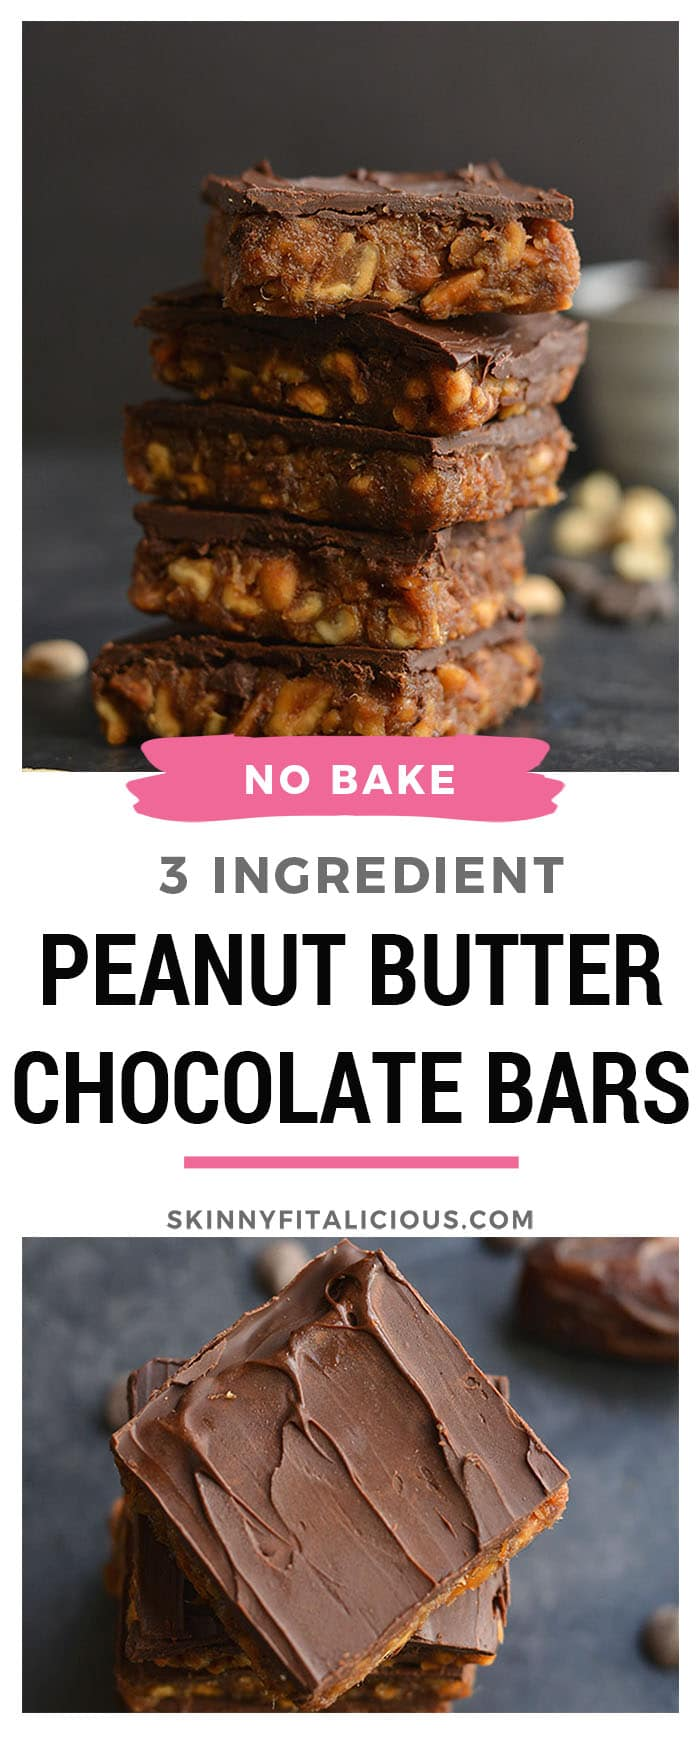 3 Ingredient Peanut Butter Chocolate Chip Bars! They taste like candy, but are secretly good for you! Sweetened with dates, these simple no bake bars easy to make and kid friendly. Vegan, Gluten Free + Paleo Option